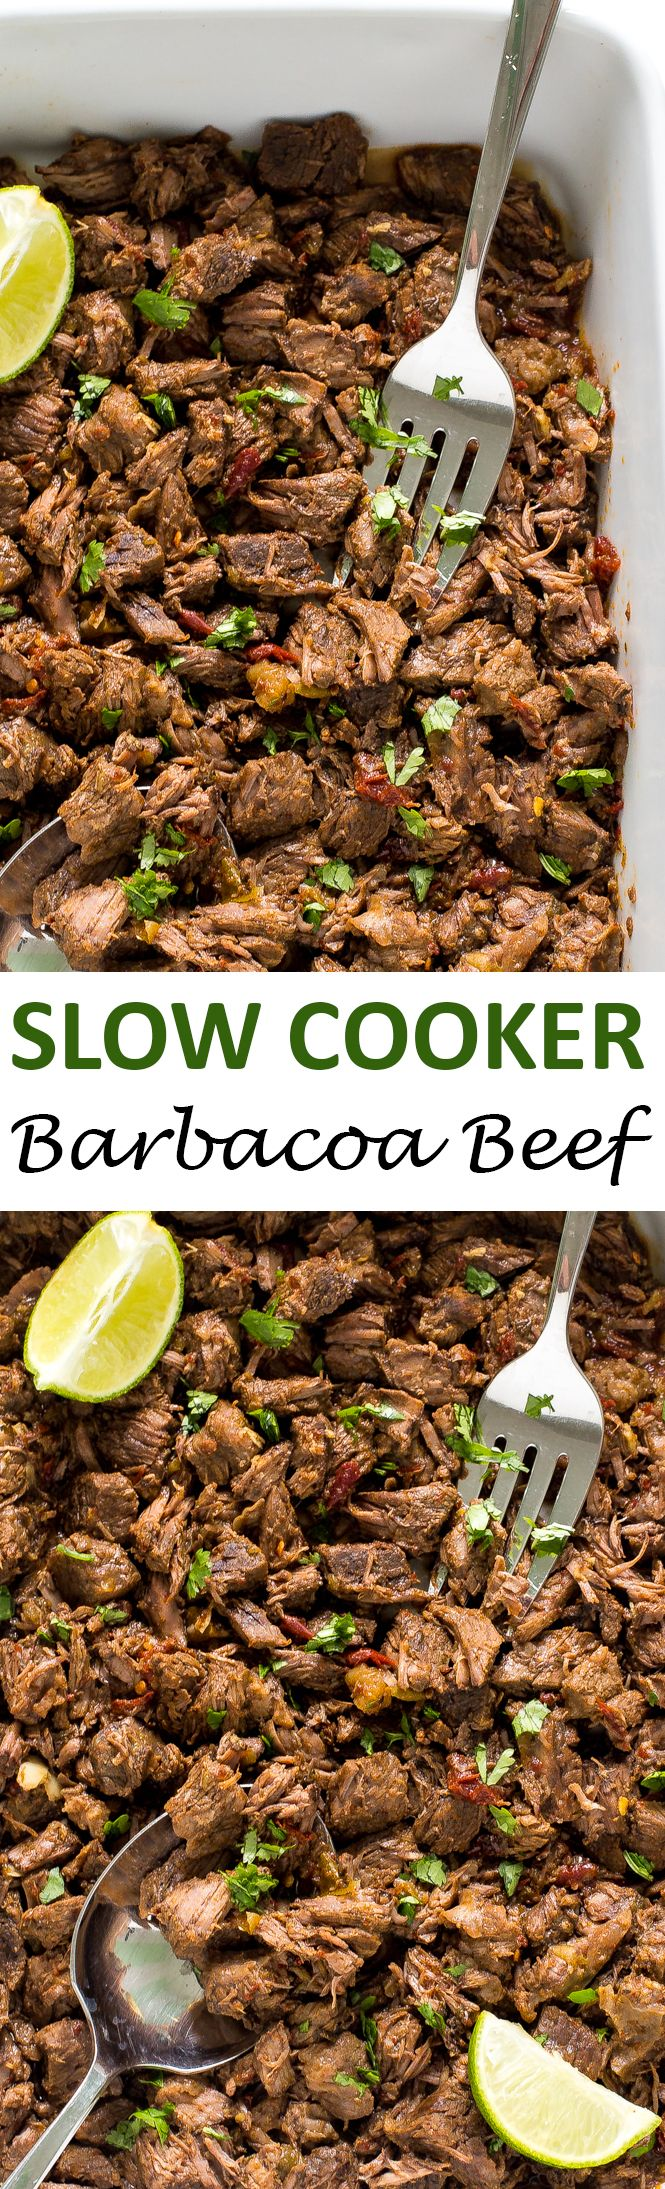 *Slow Cooker Barbacoa Beef